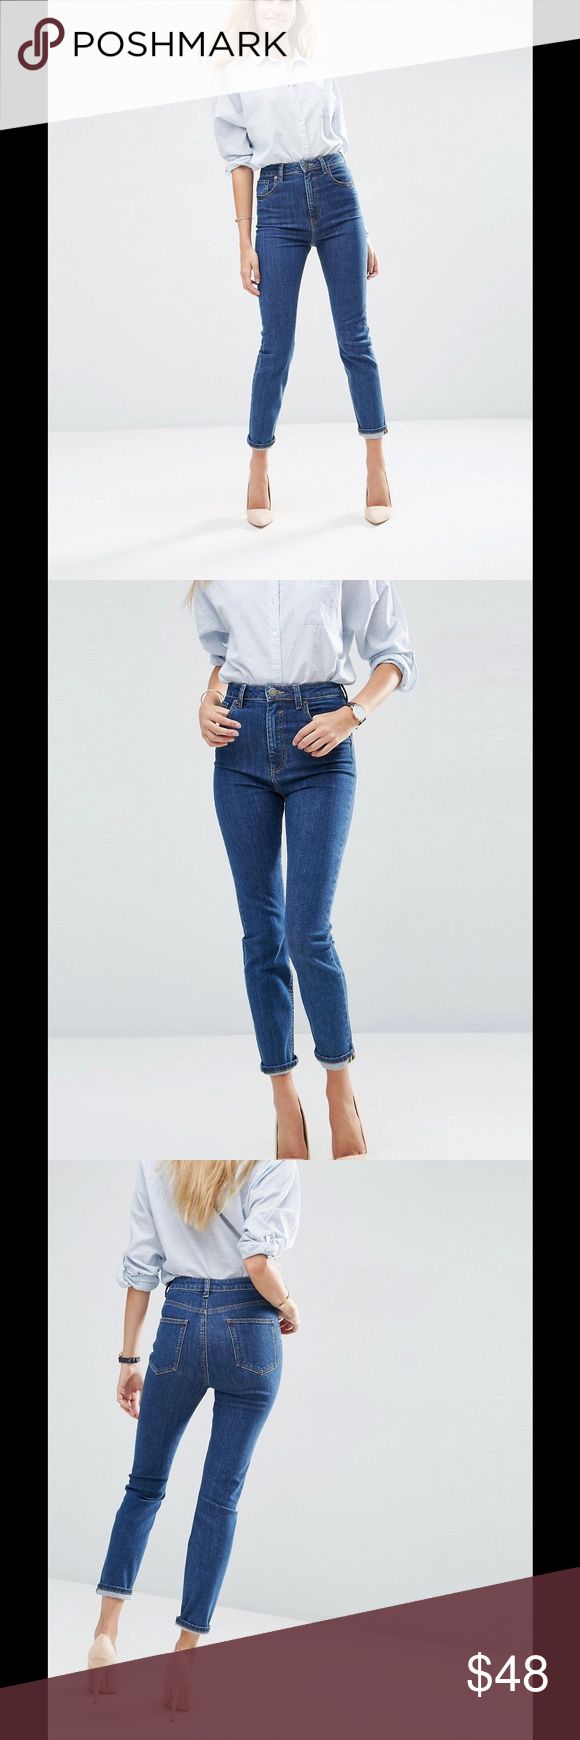 """ASOS  FARLEIGH High Waist Slim Mom Jeans NOT FOR SALE!! Do not buy this listing.  Download the Dote Shopping app and get these jeans for $48 plus free shipping using the promo code """"PDIN."""" ASOS Jeans"""